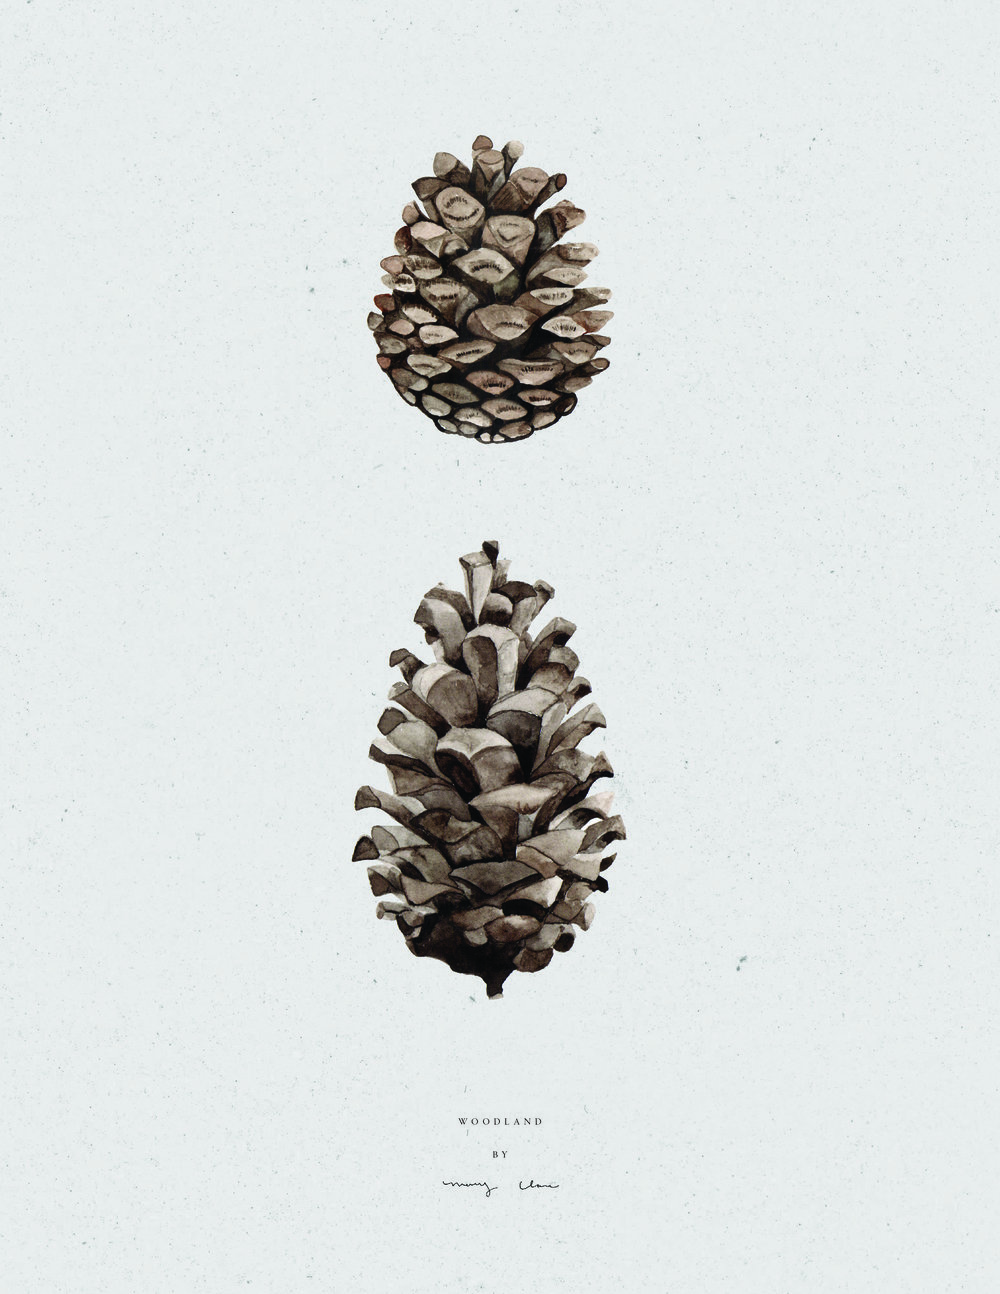 woodland-pinecones-watercolour-maryclarewilkie-04-03.jpg